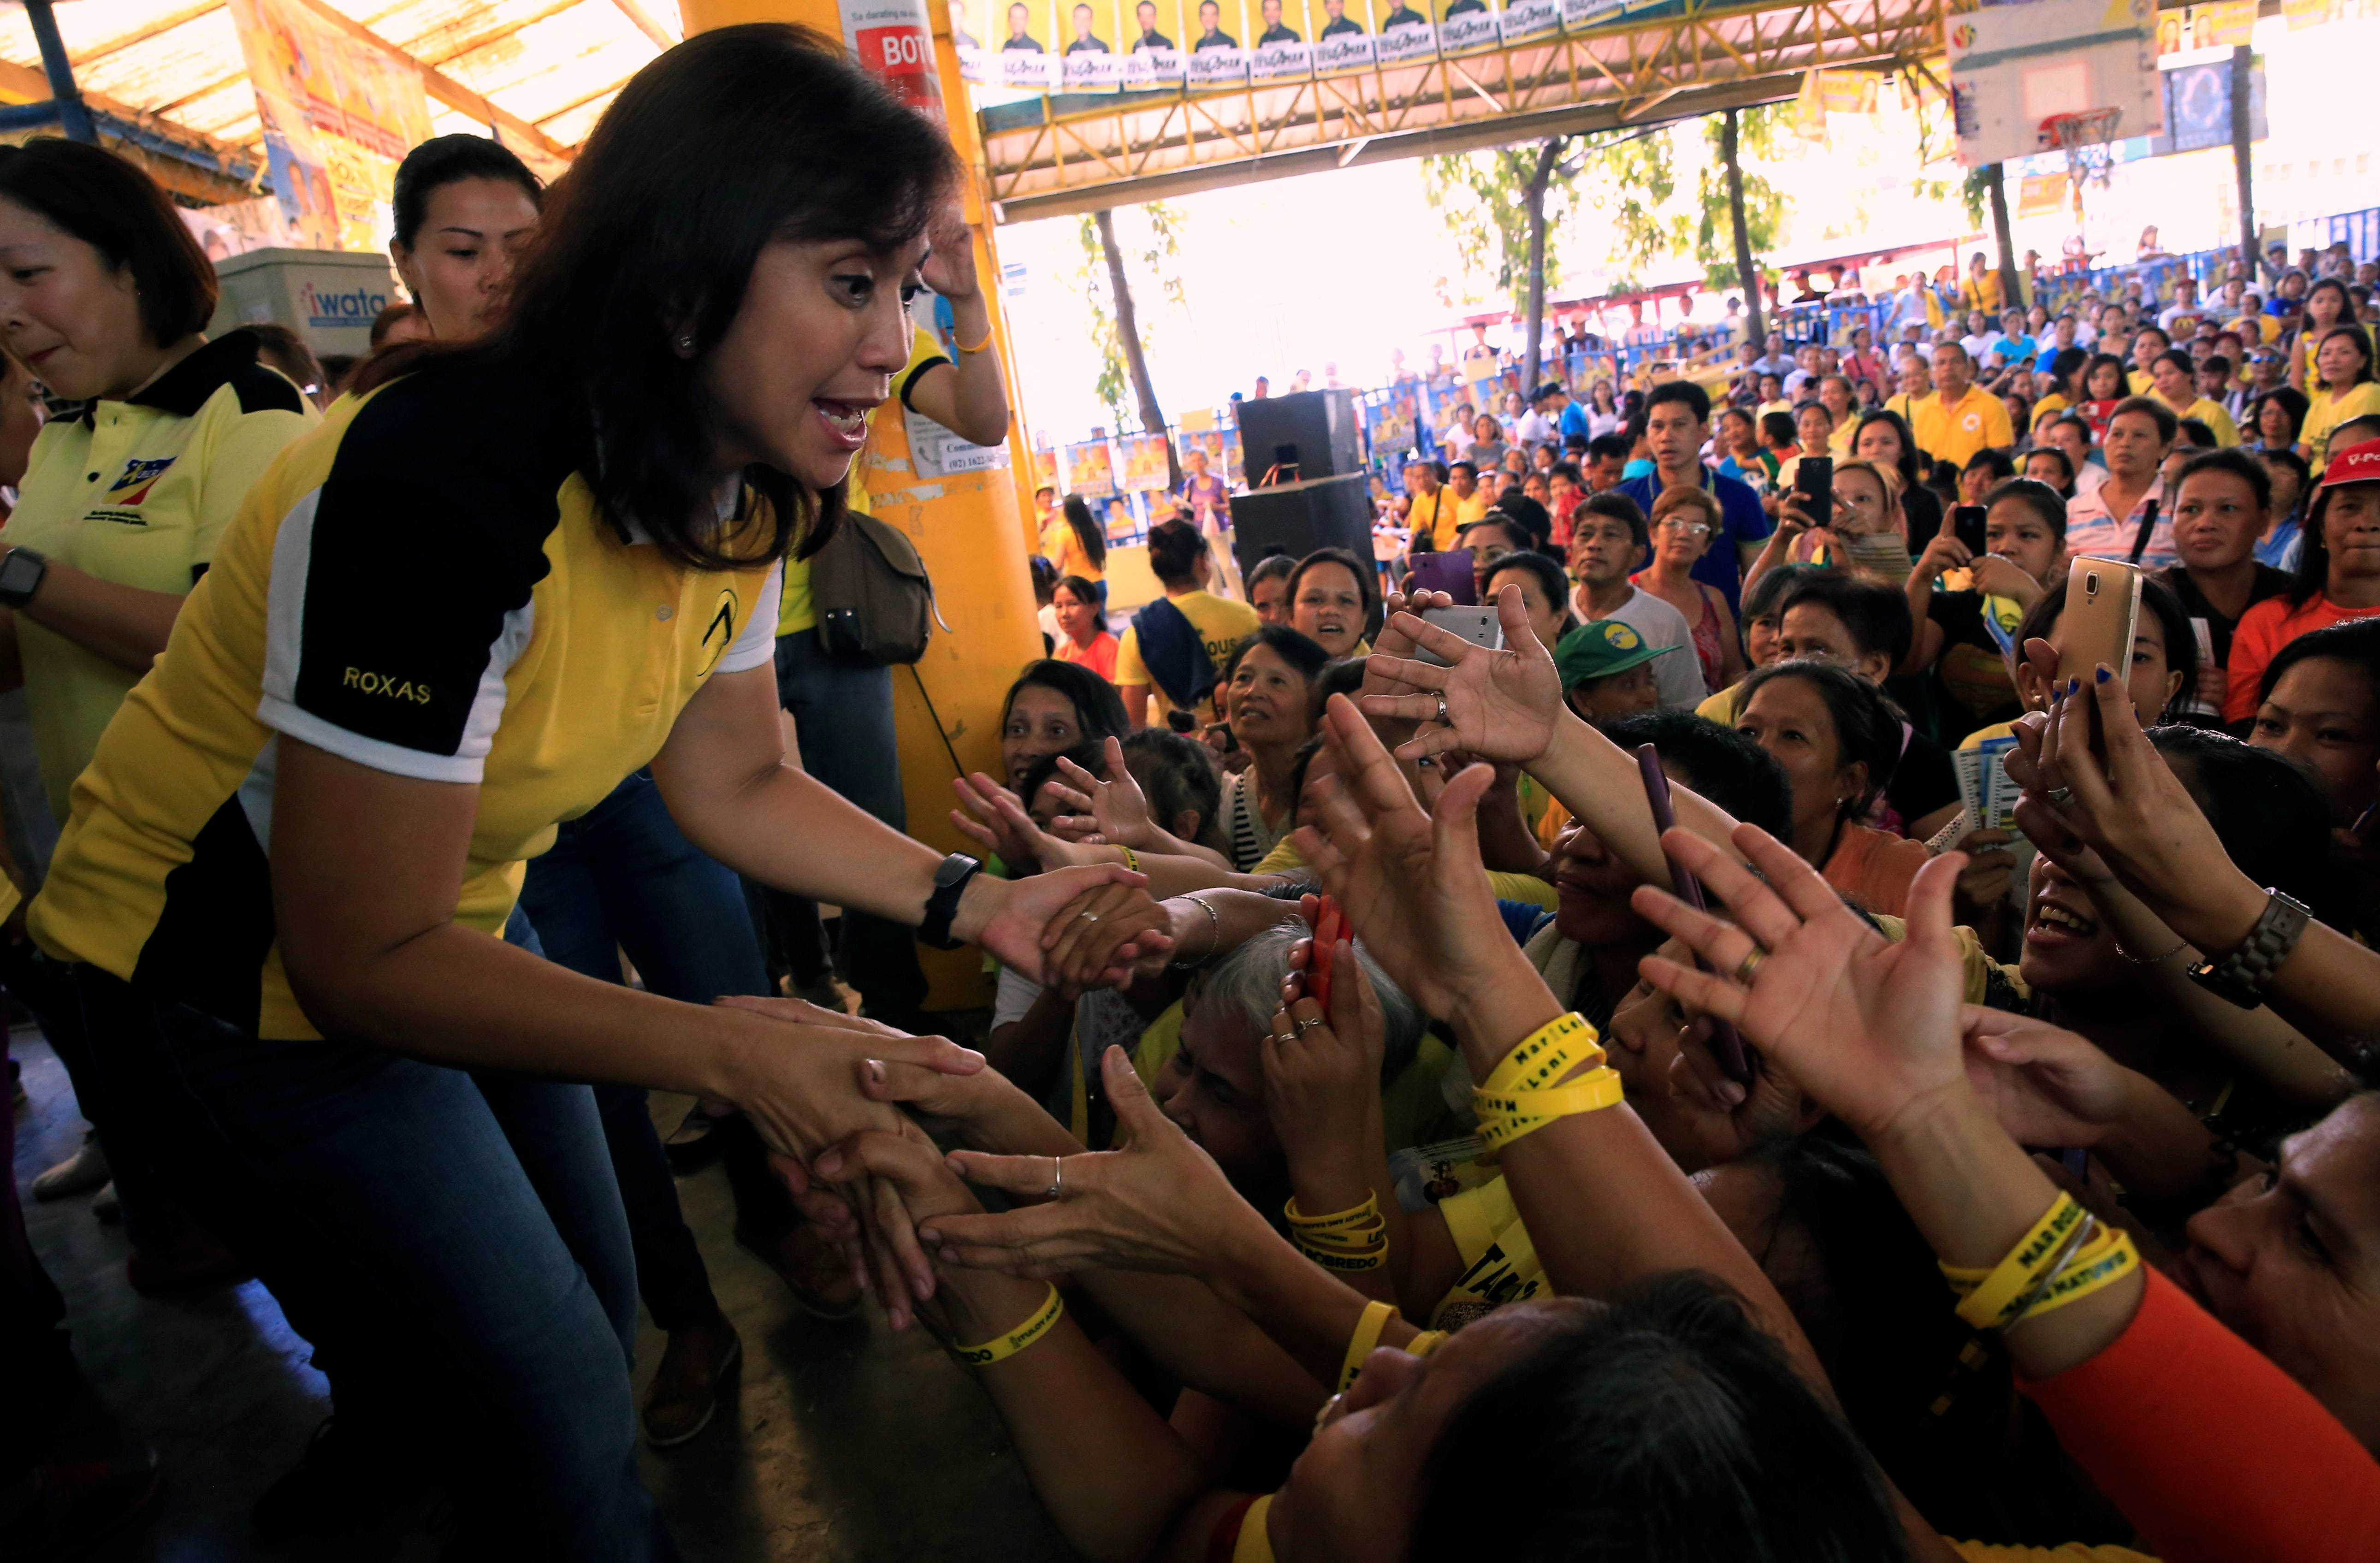 Philippine Vice-presidential candidate and congresswoman Leni Robredo is greeted by supporters during her campaign rally in Quezon City, Metro Manila, Phillipines May 4, 2016.